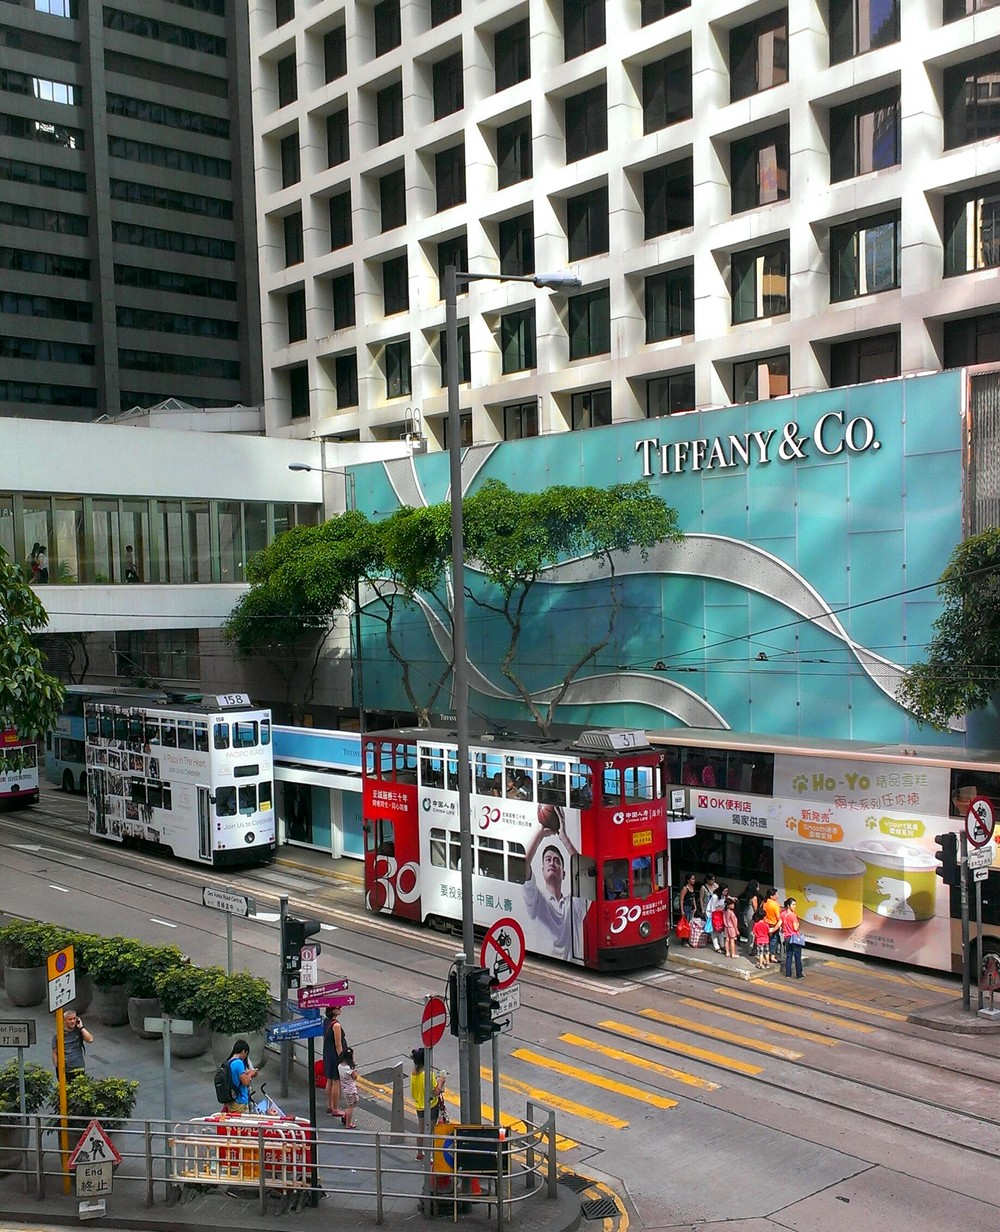 Two story trams in Hong Kong - Public Transport System in Hong Kong